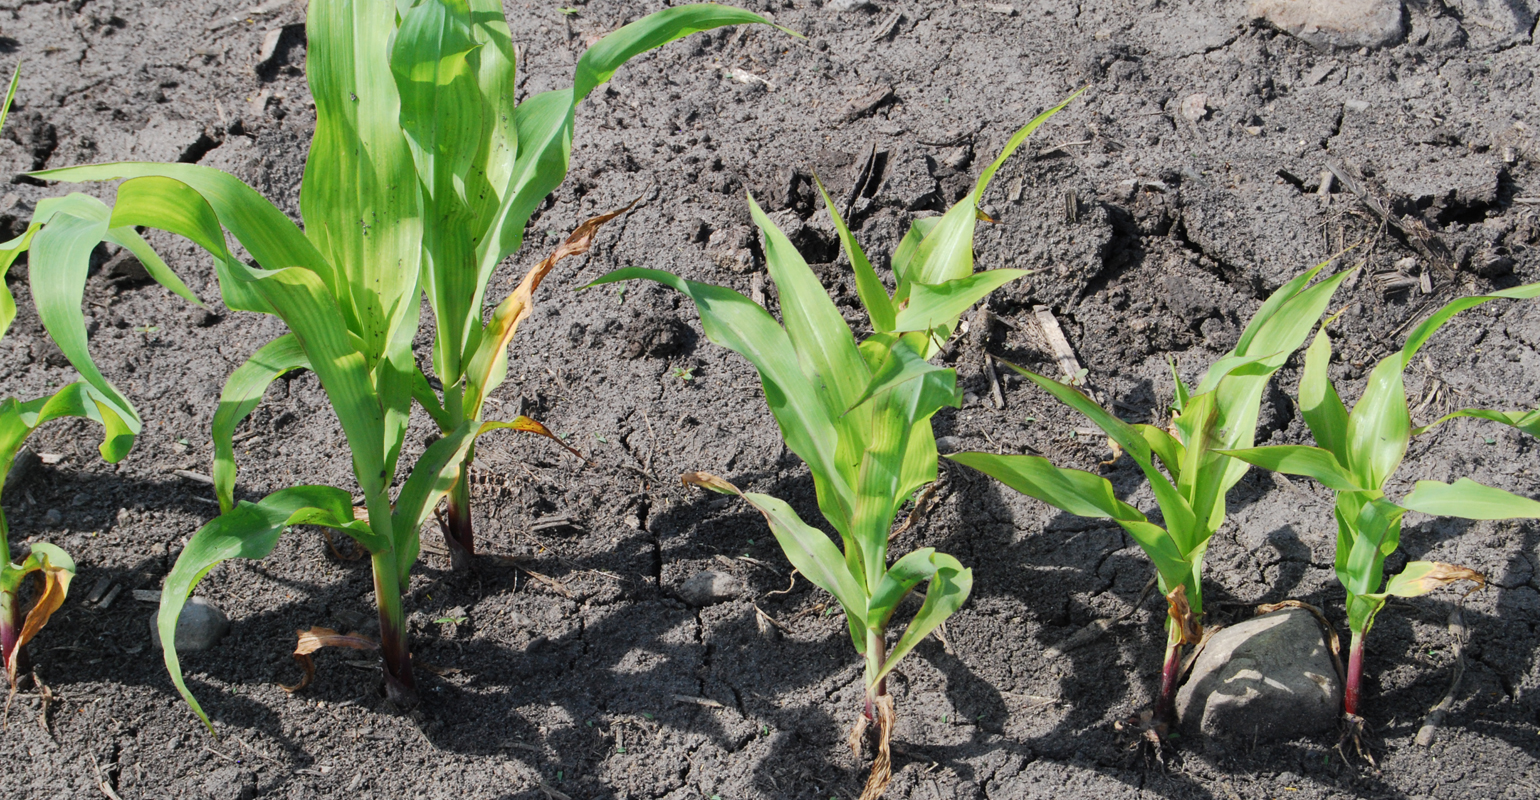 Yellow corn plants are showing up in field areas this spring where wet soils restrict early corn growth and soils have low nitrate levels.